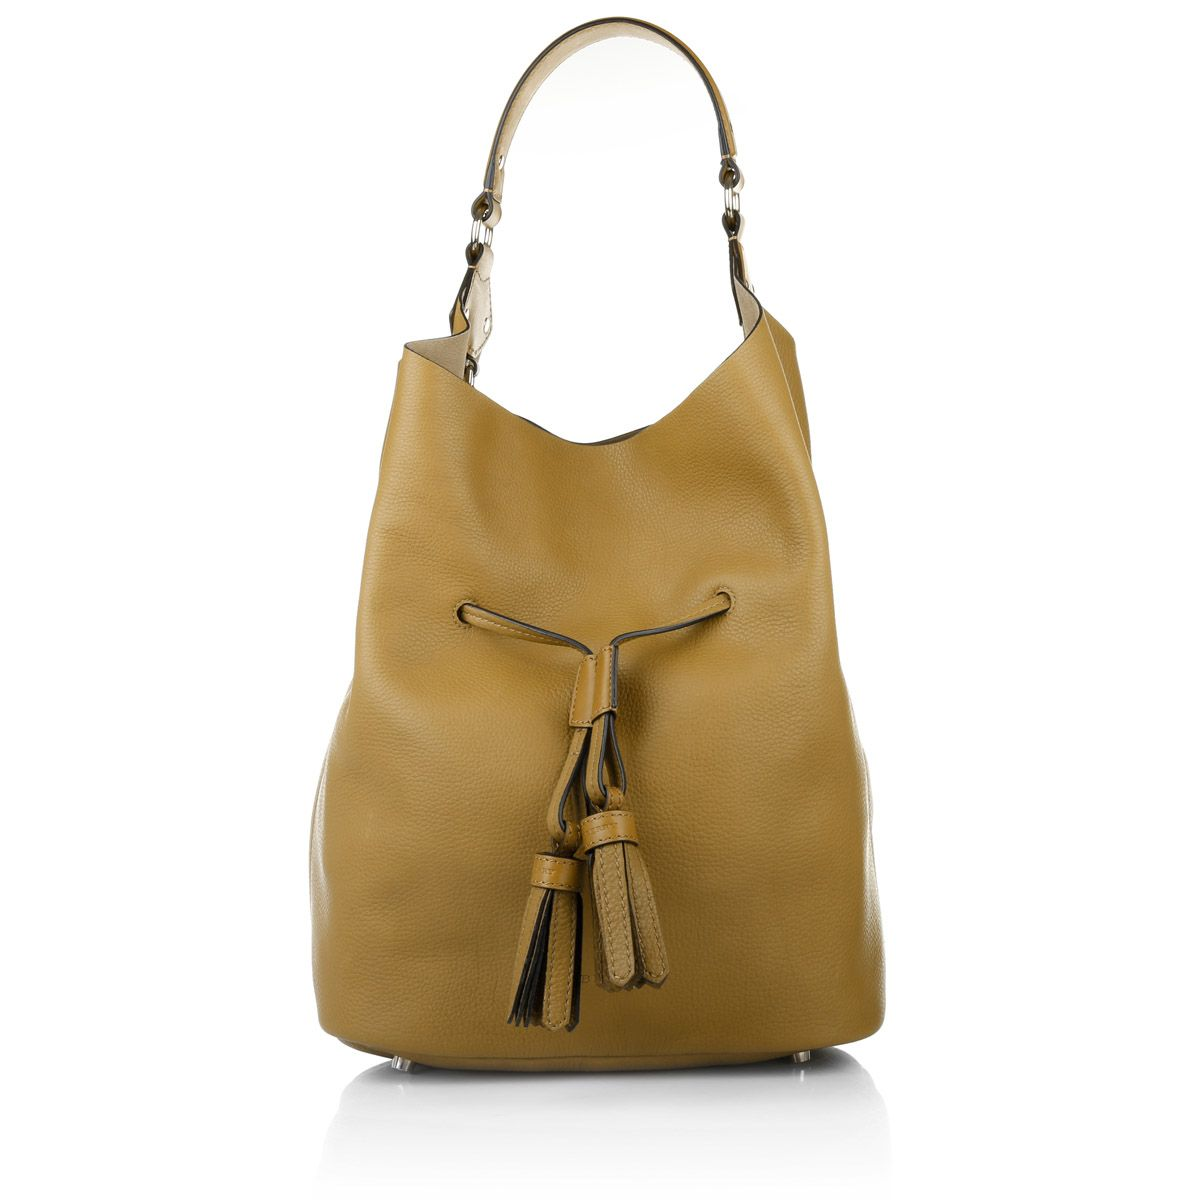 08f1ca882d5b3 Fashionette wears  business bags by Burberry. Brit Grainy Leather Large  Susanna Hobo Bag